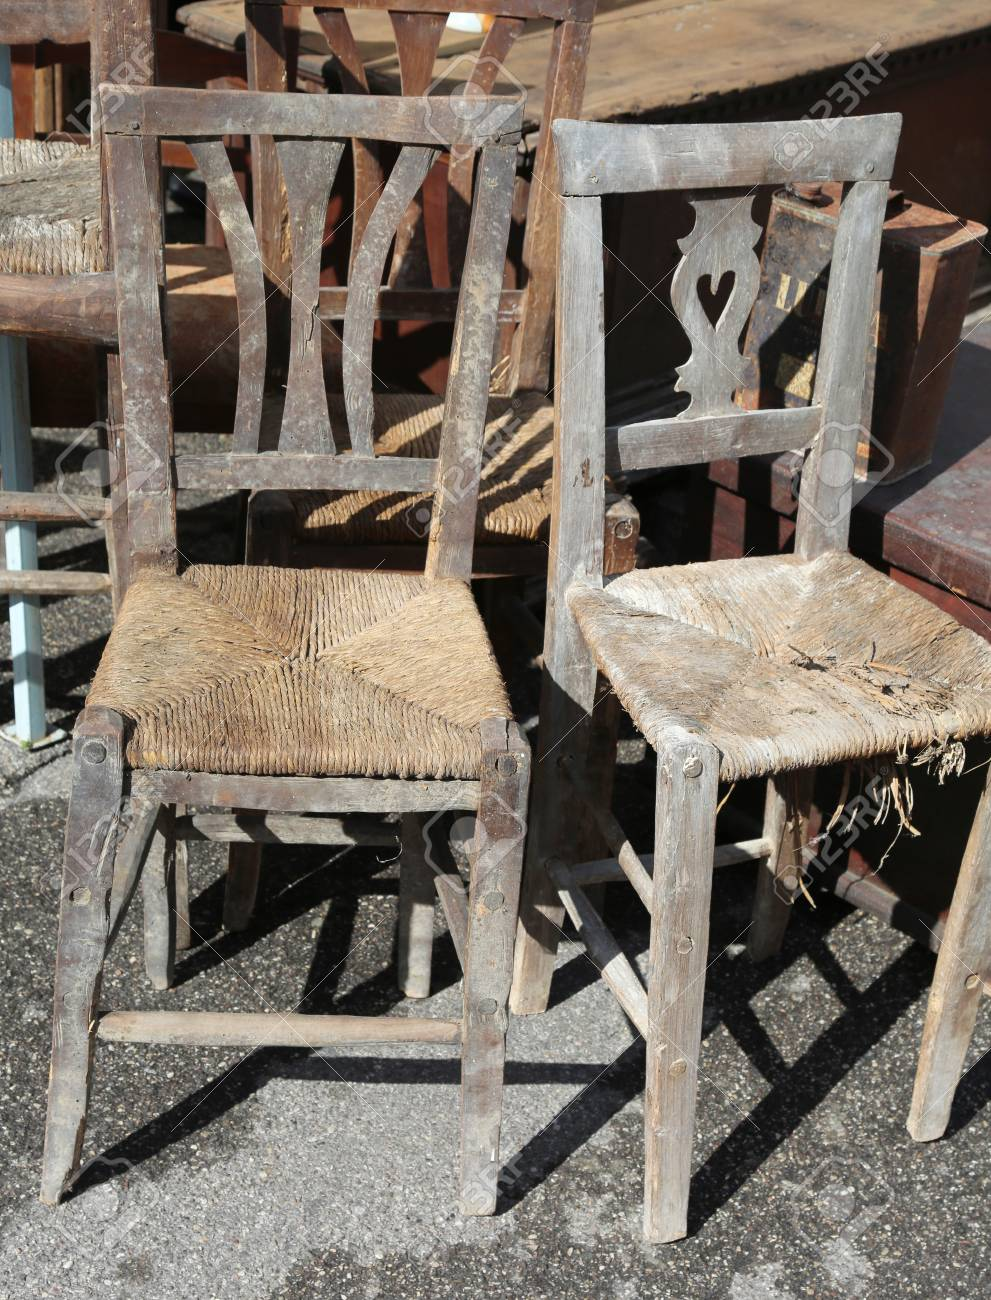 wicker chair for sale kids wooden desk chairs old in the outdoor antiques market stock photo 73618109